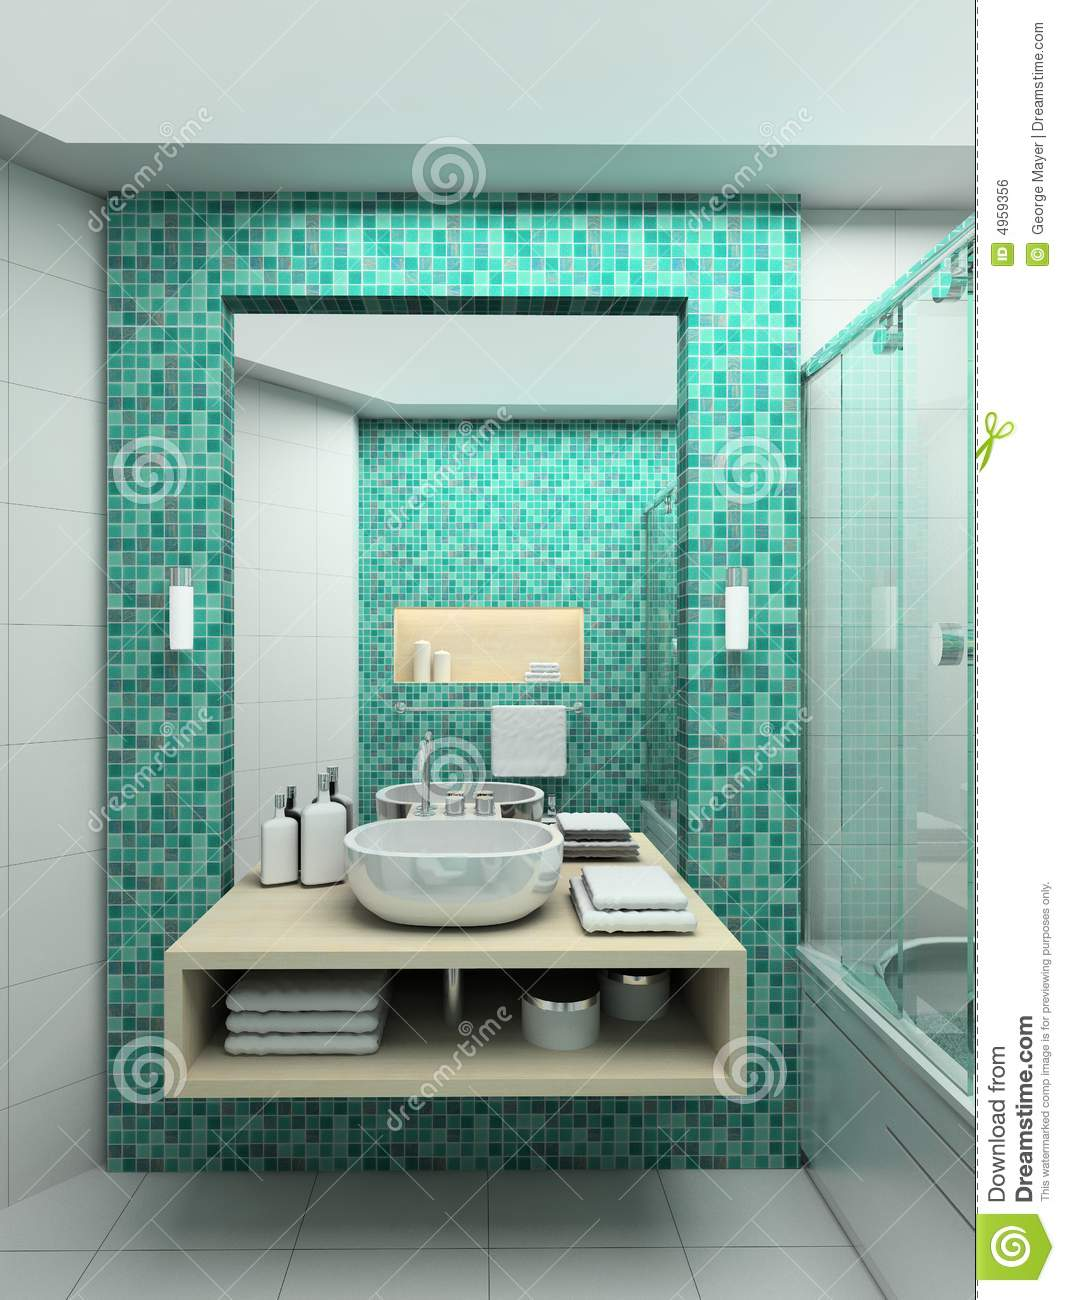 Design a bathroom 3d - Bathroom Design